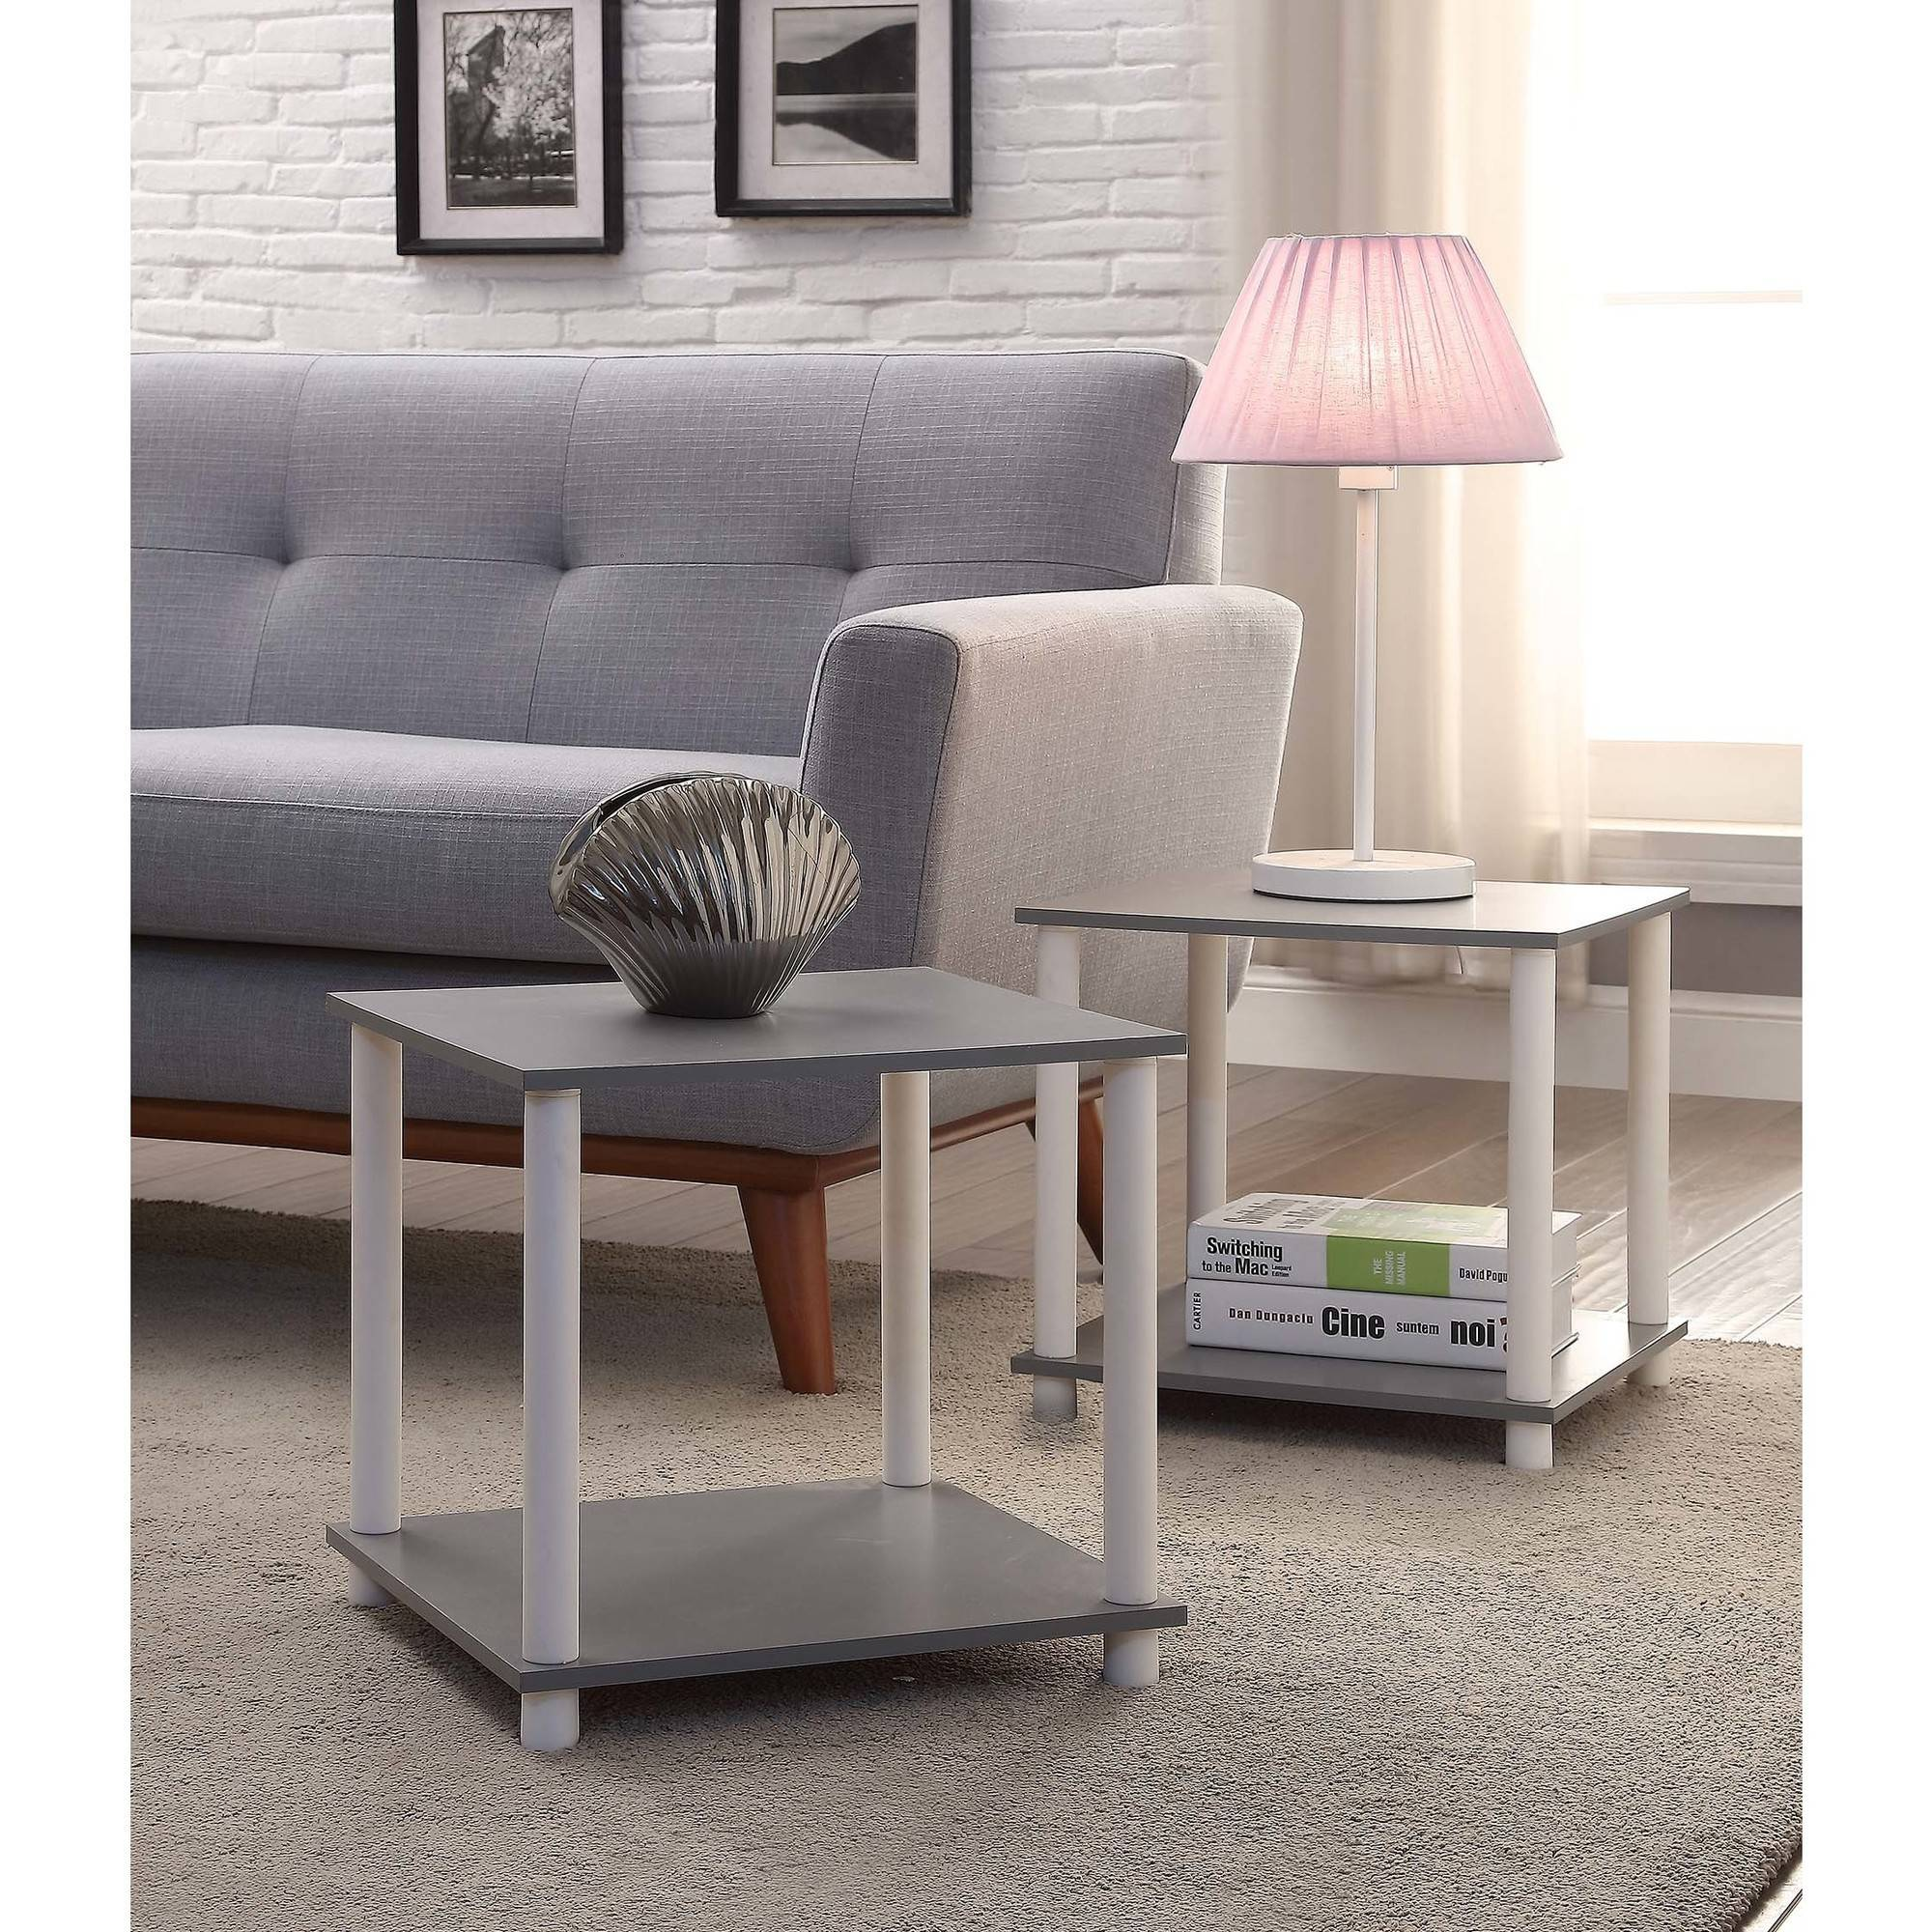 mainstays tools cube multiple colors end tables set black rugs that with brown couch round glass top table ashley furniture specials small solid wood coffee unfinished computer